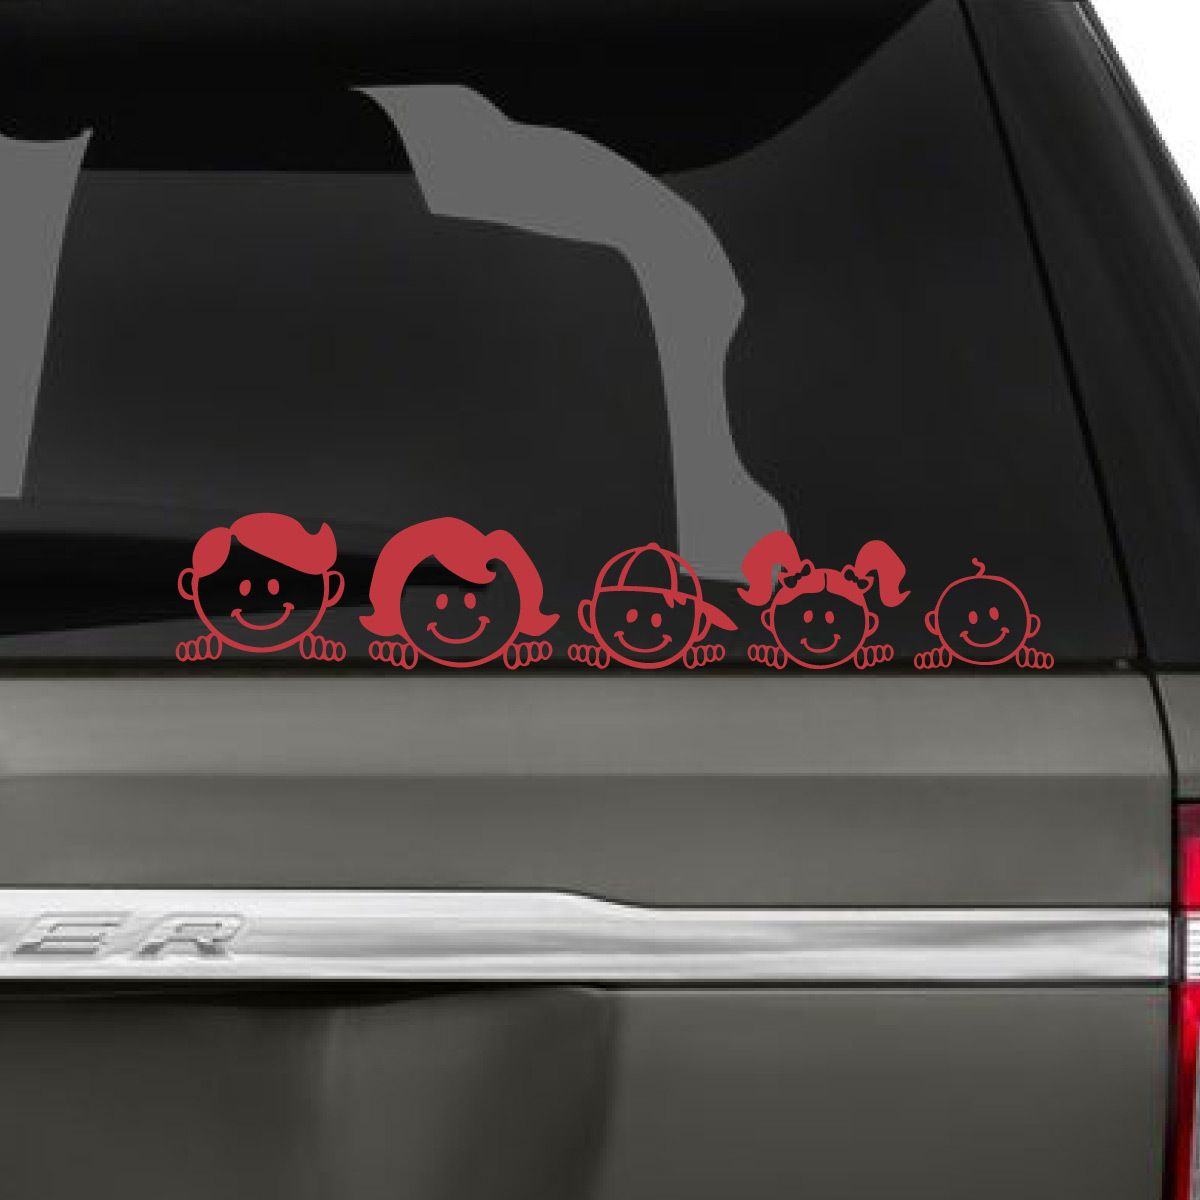 Peeping Family Car Decal Family Car Decals Family Car Family Car Stickers [ 1200 x 1200 Pixel ]